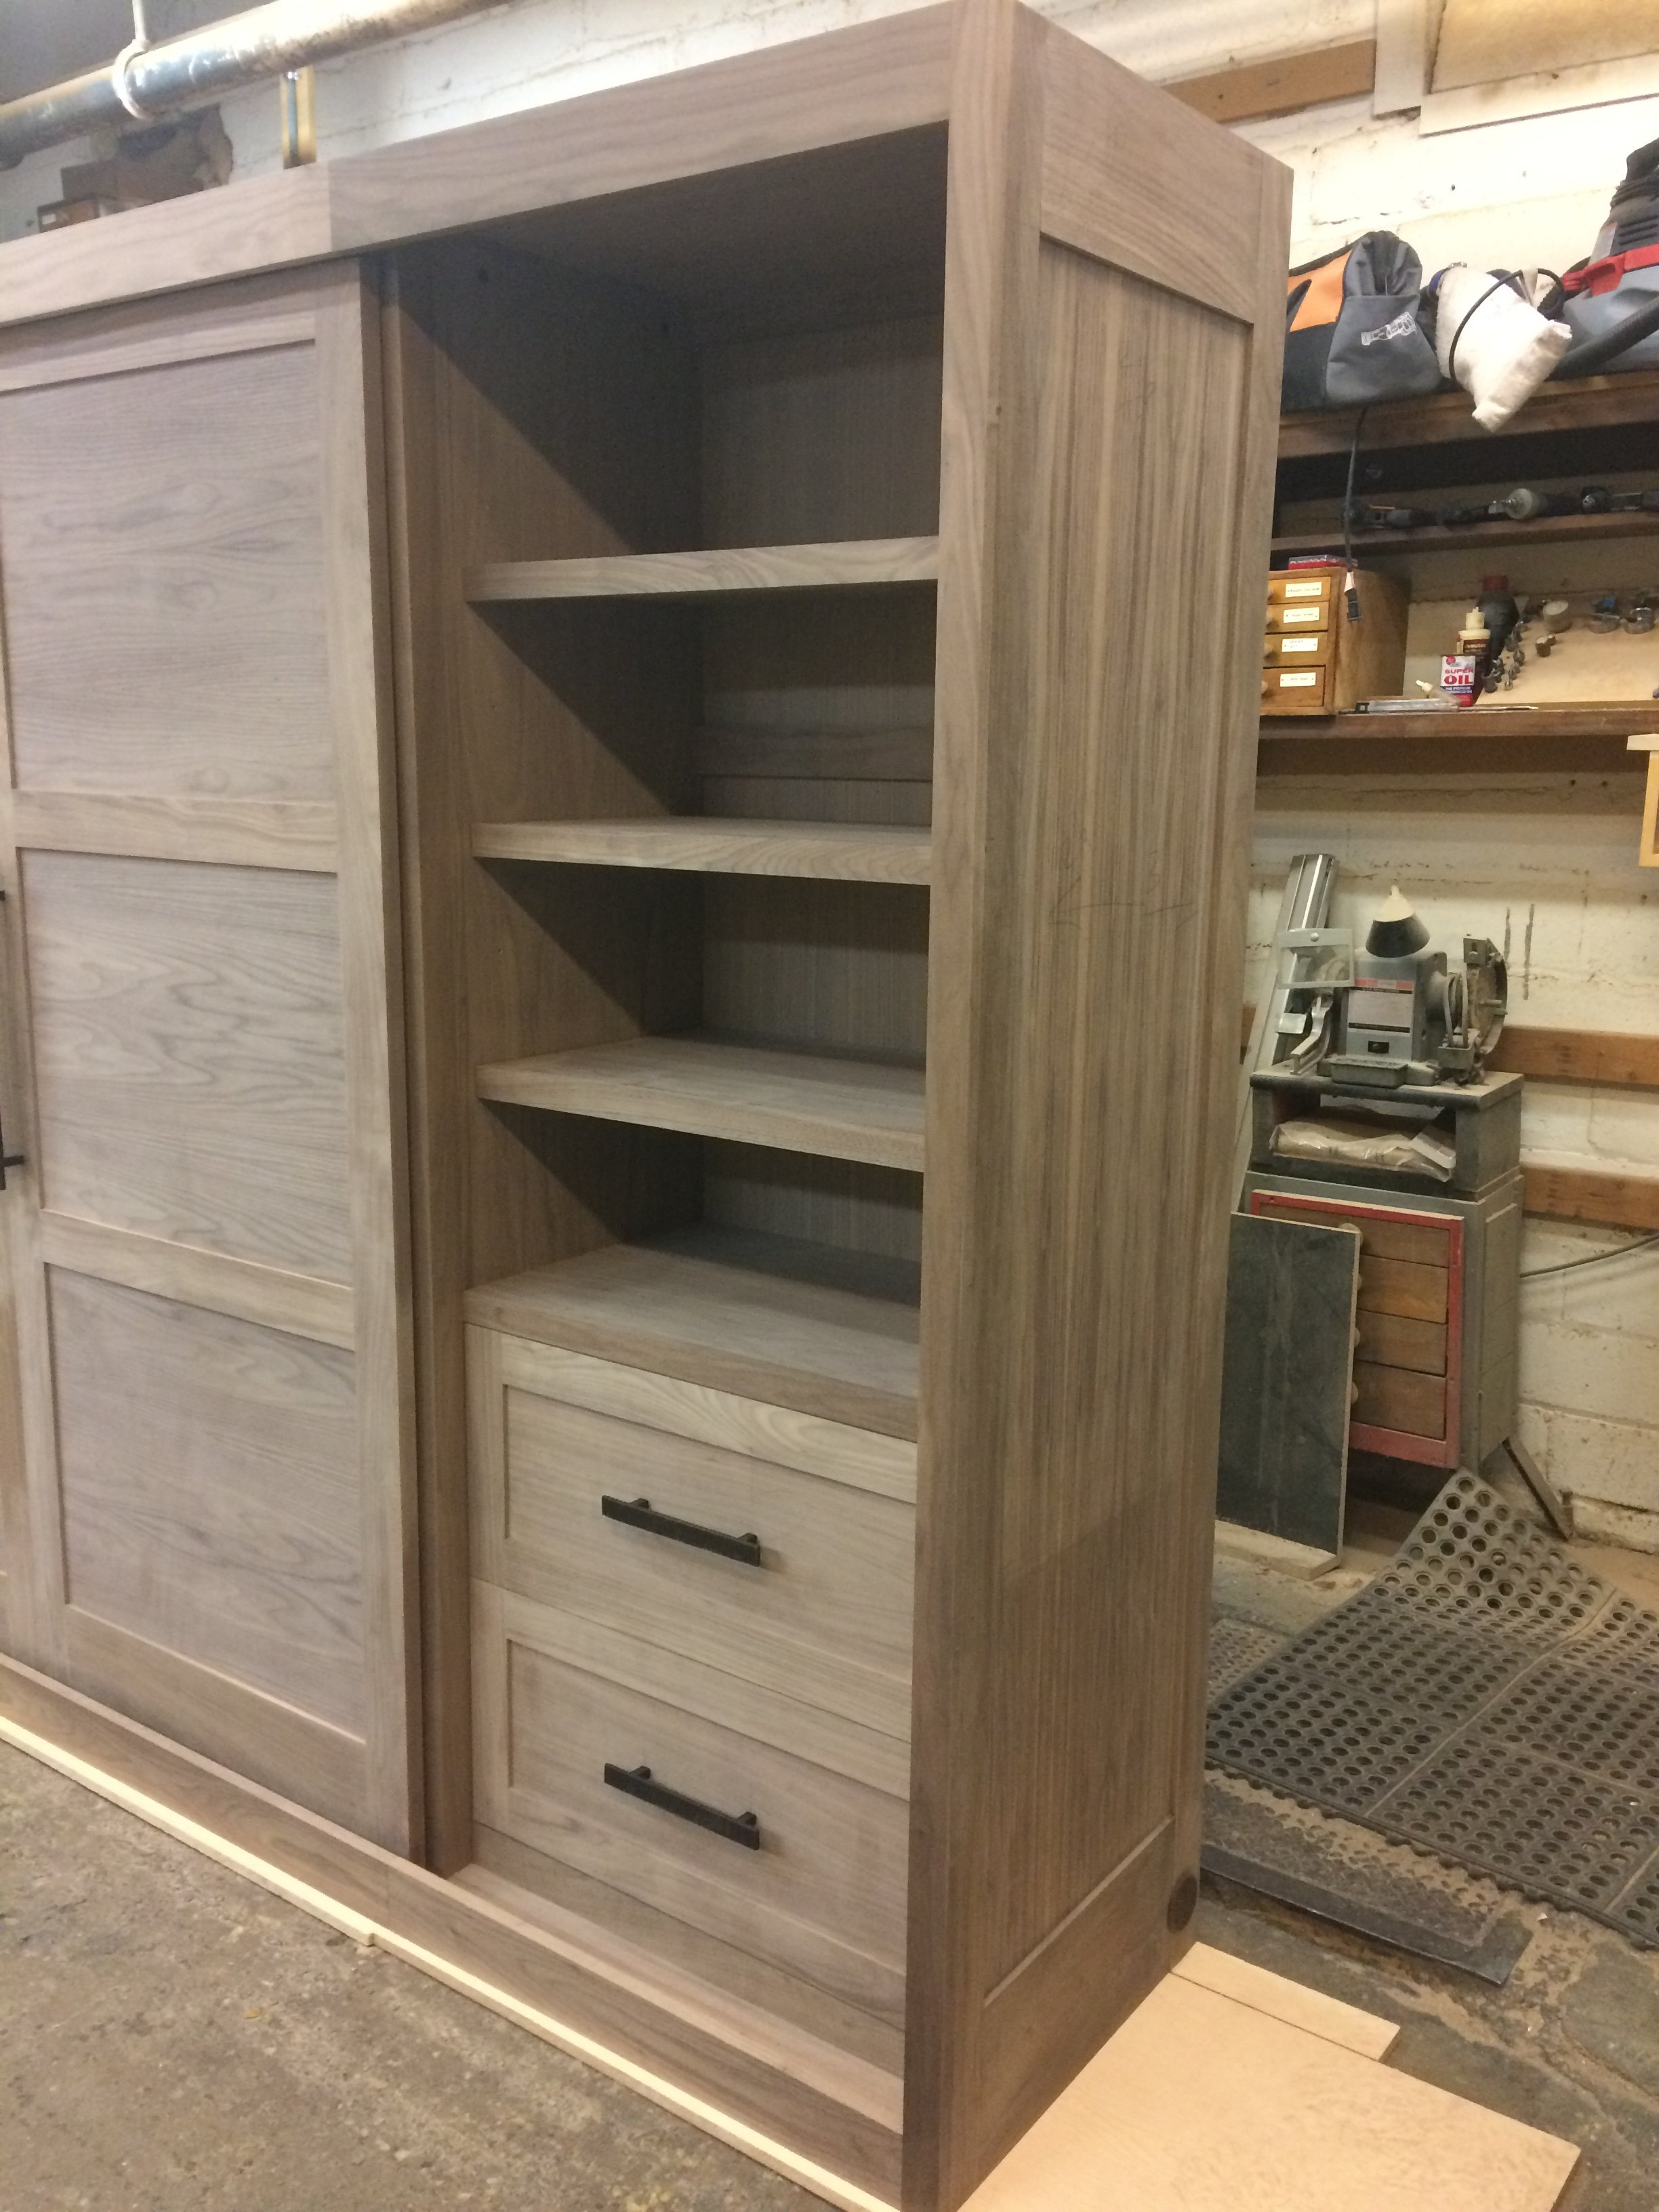 Walnut sliding door media cabinetry